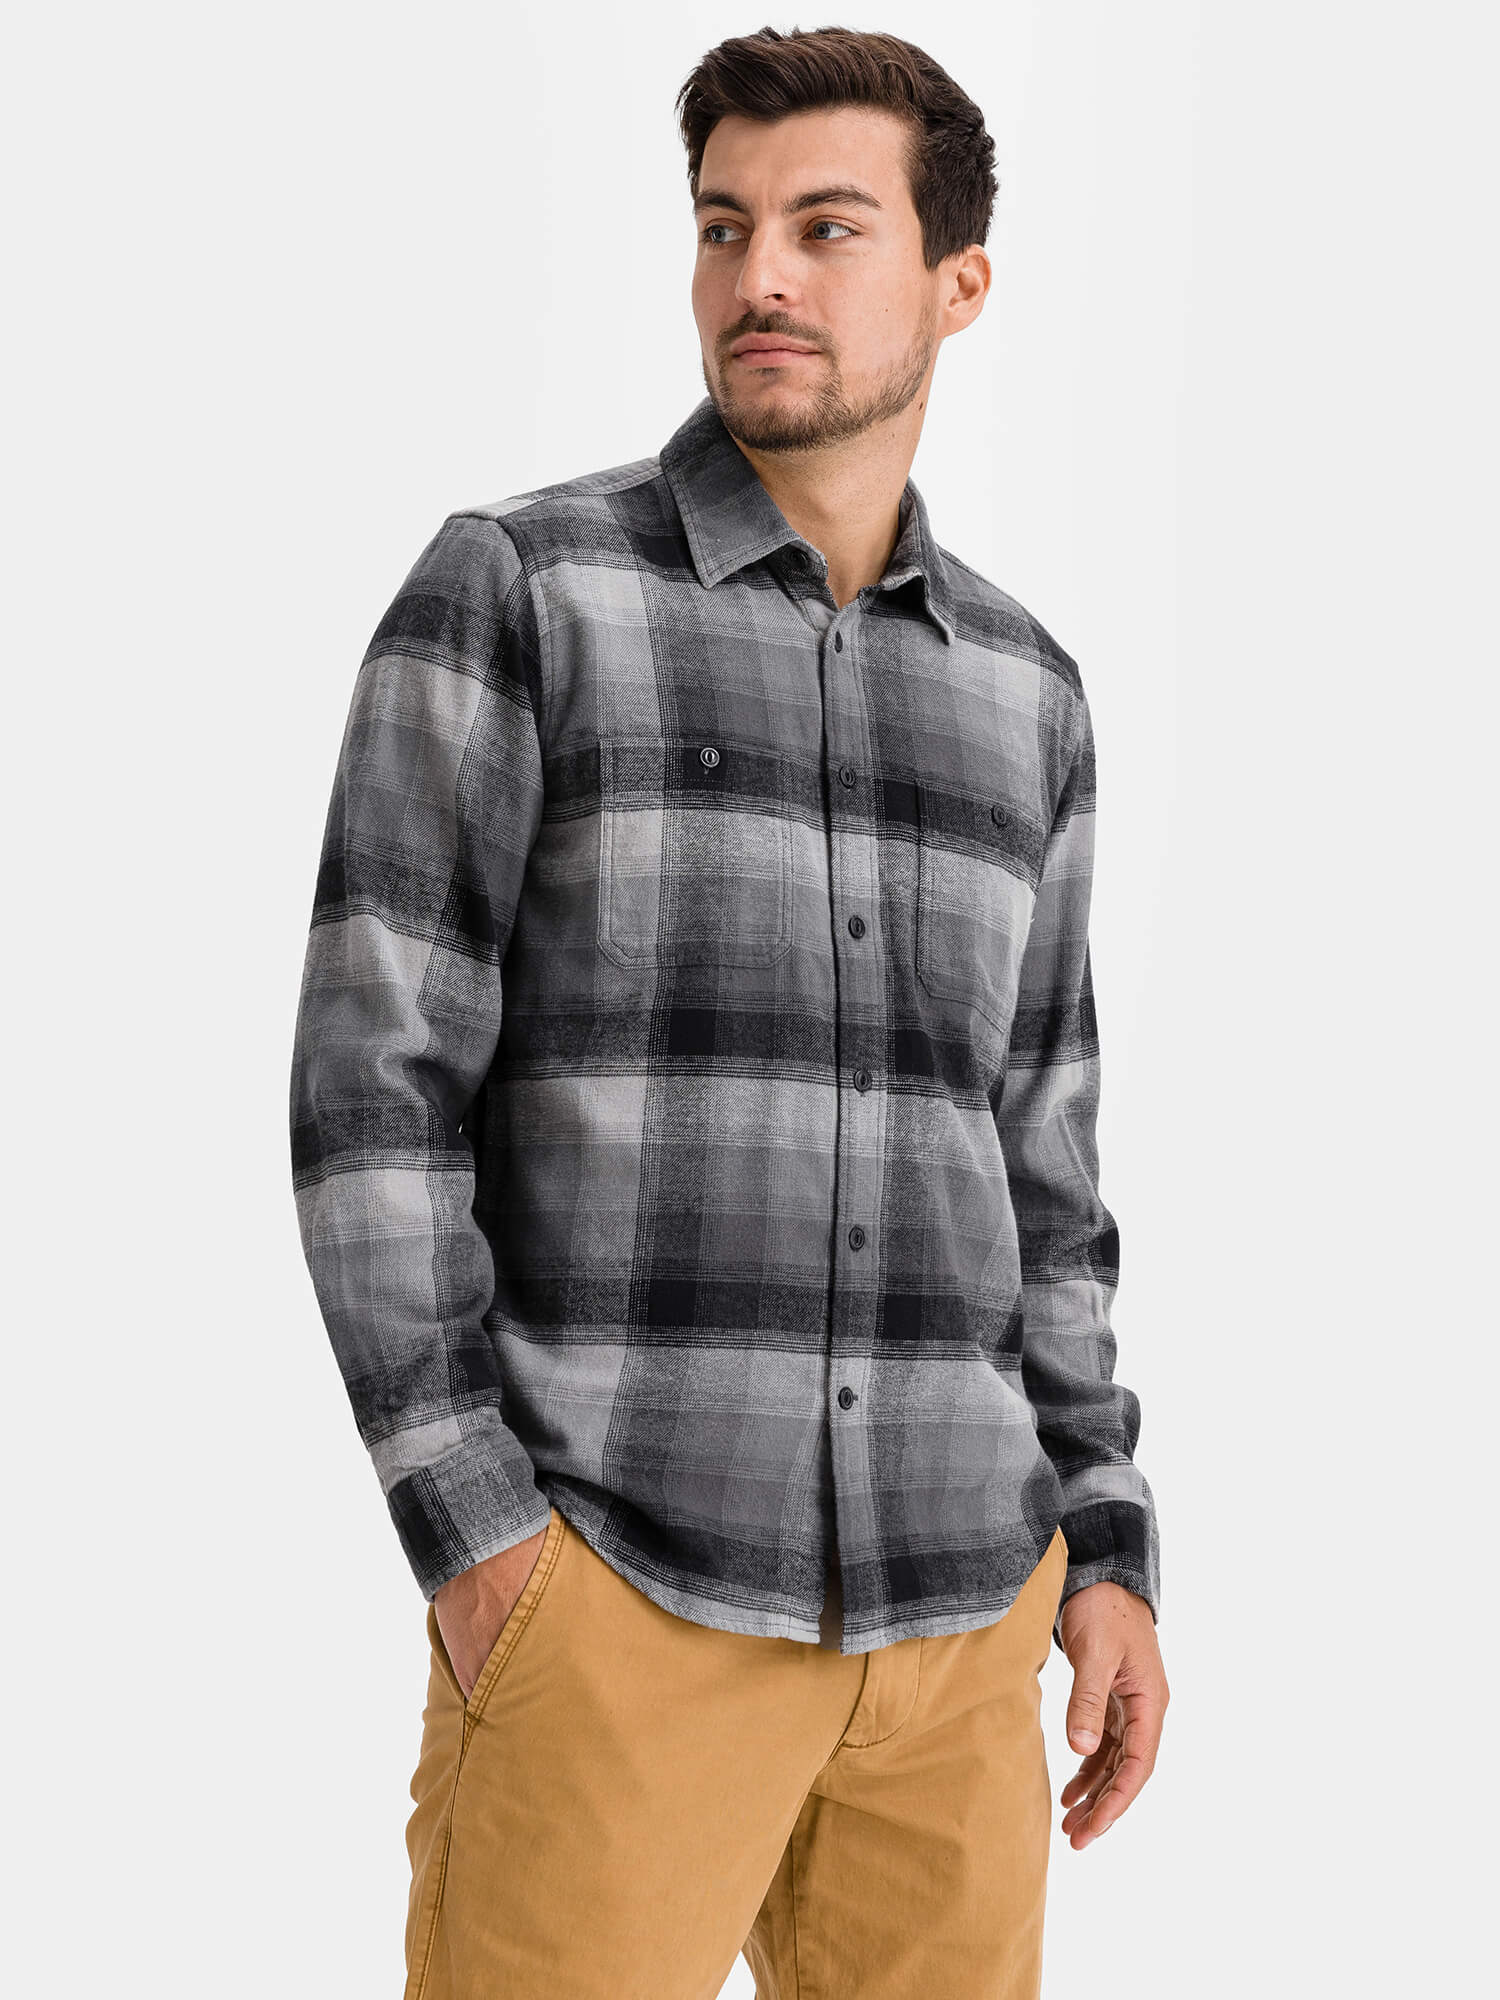 Košeľa flannel shirt in untucked fit (1)